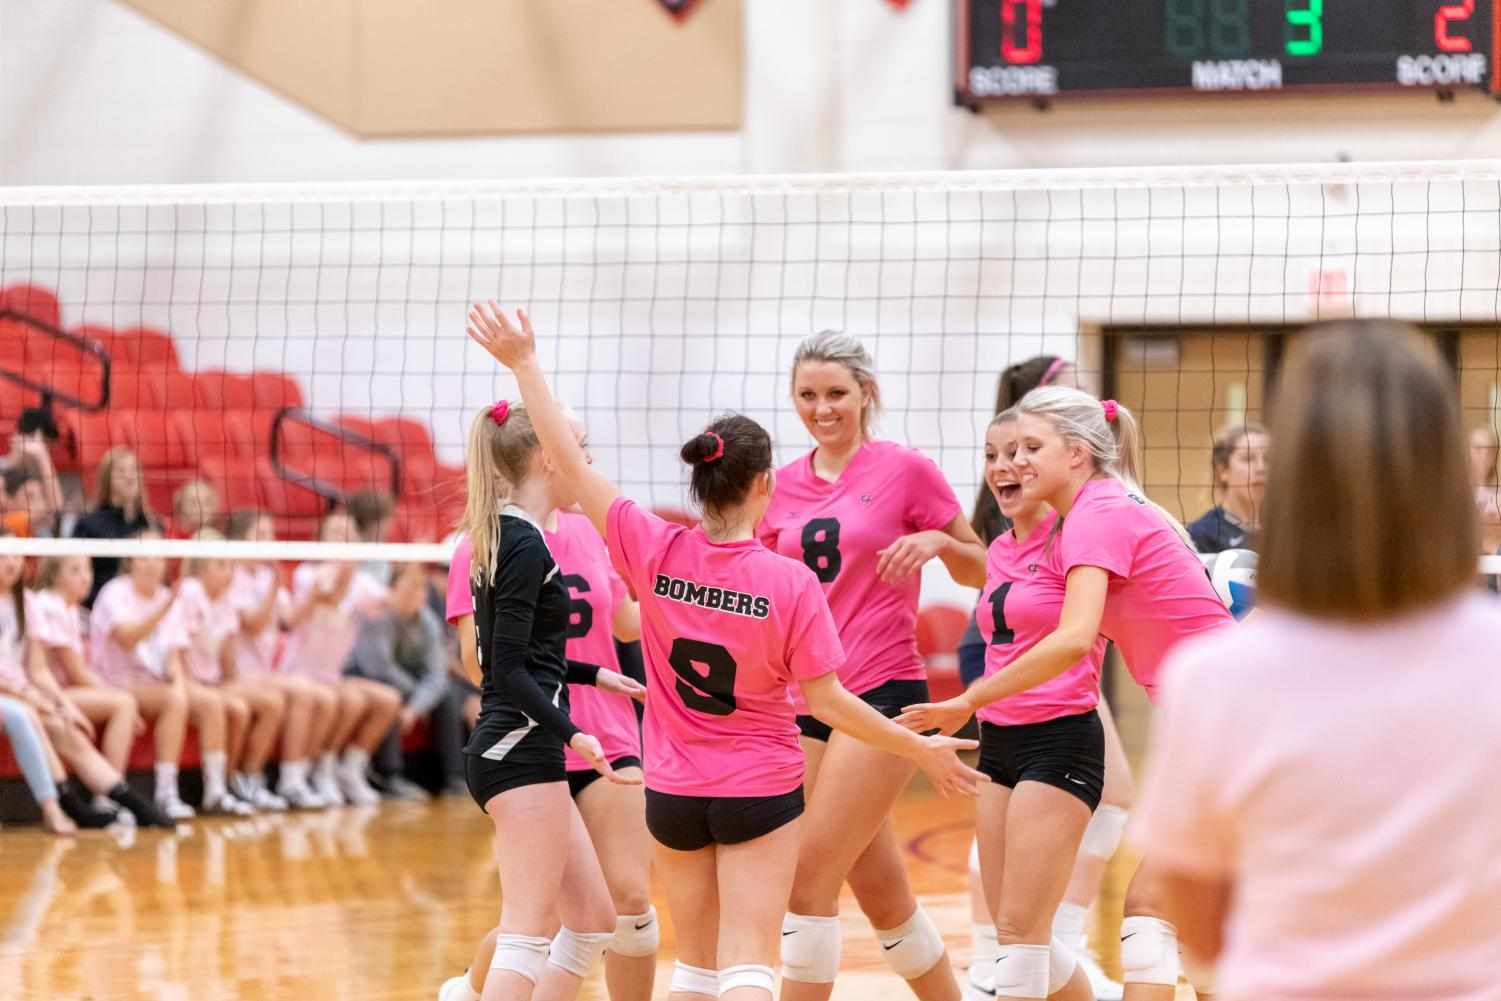 Pink jerseys were worn to support the fight against cancer during the homecoming volleyball game.